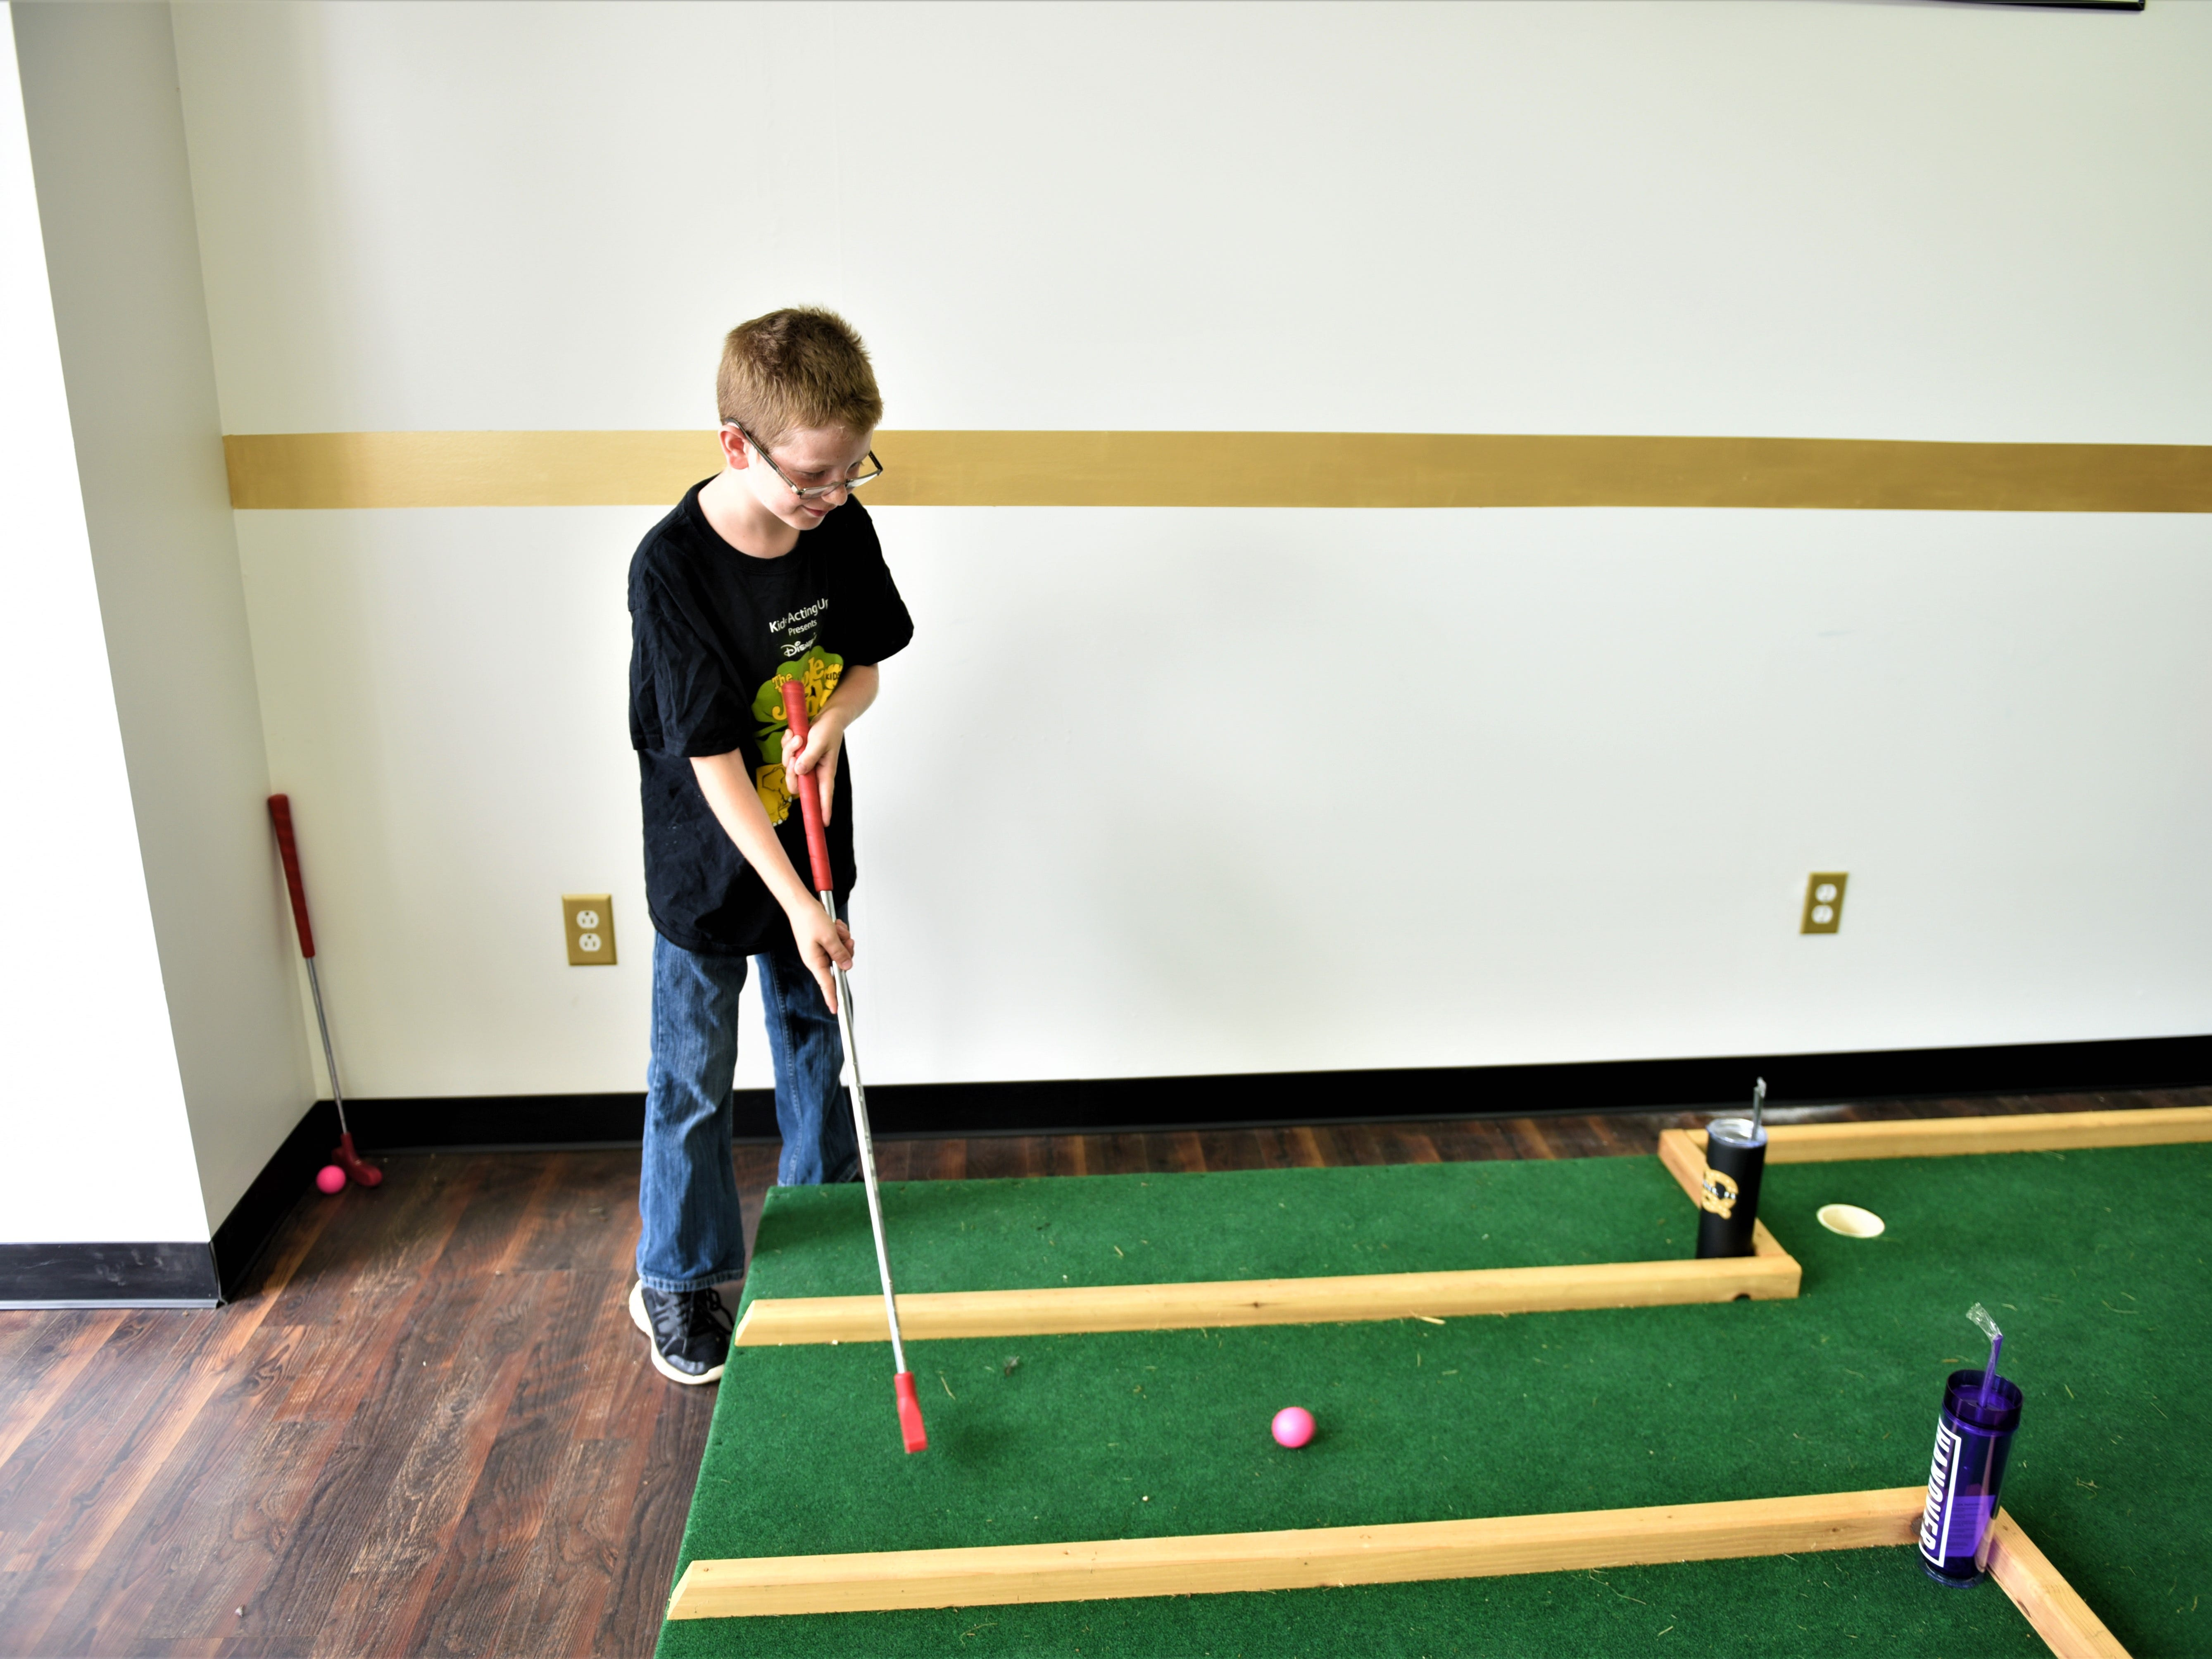 Luke Yeager, 10, playing mini gold at RSVP at the Second Saturday event in Hanover.